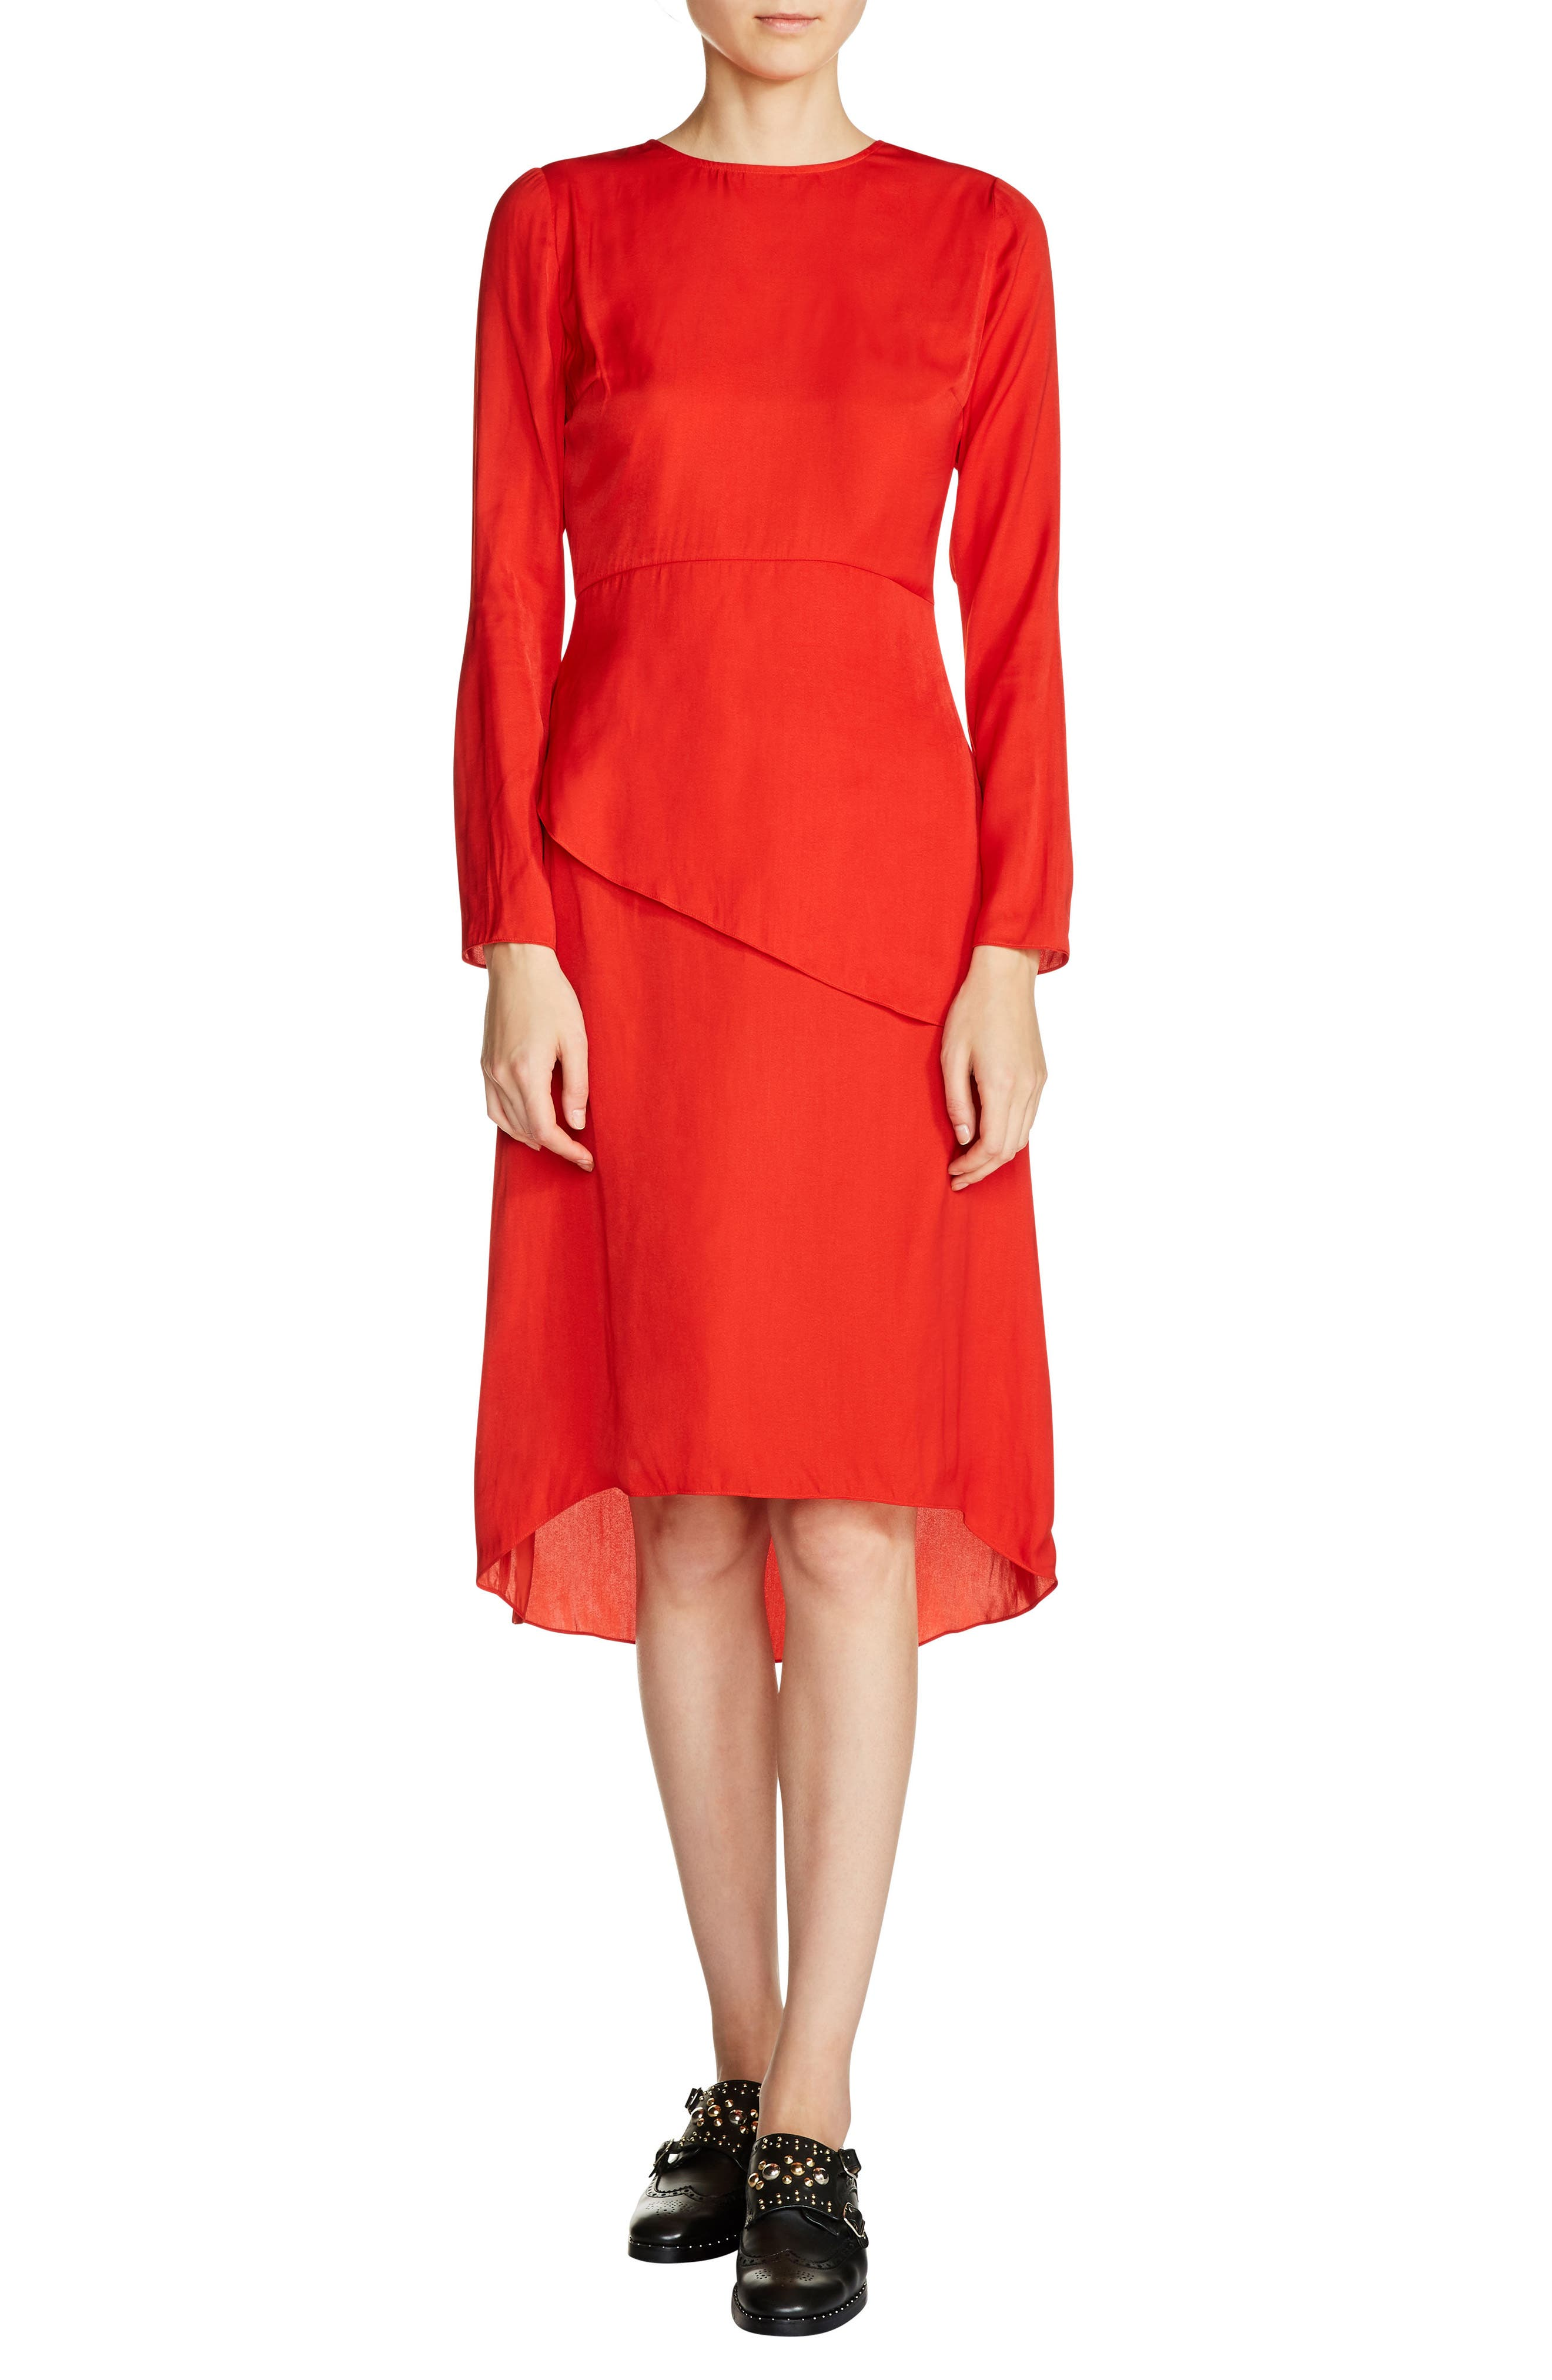 Tiered A-Line Dress,                             Main thumbnail 1, color,                             Red